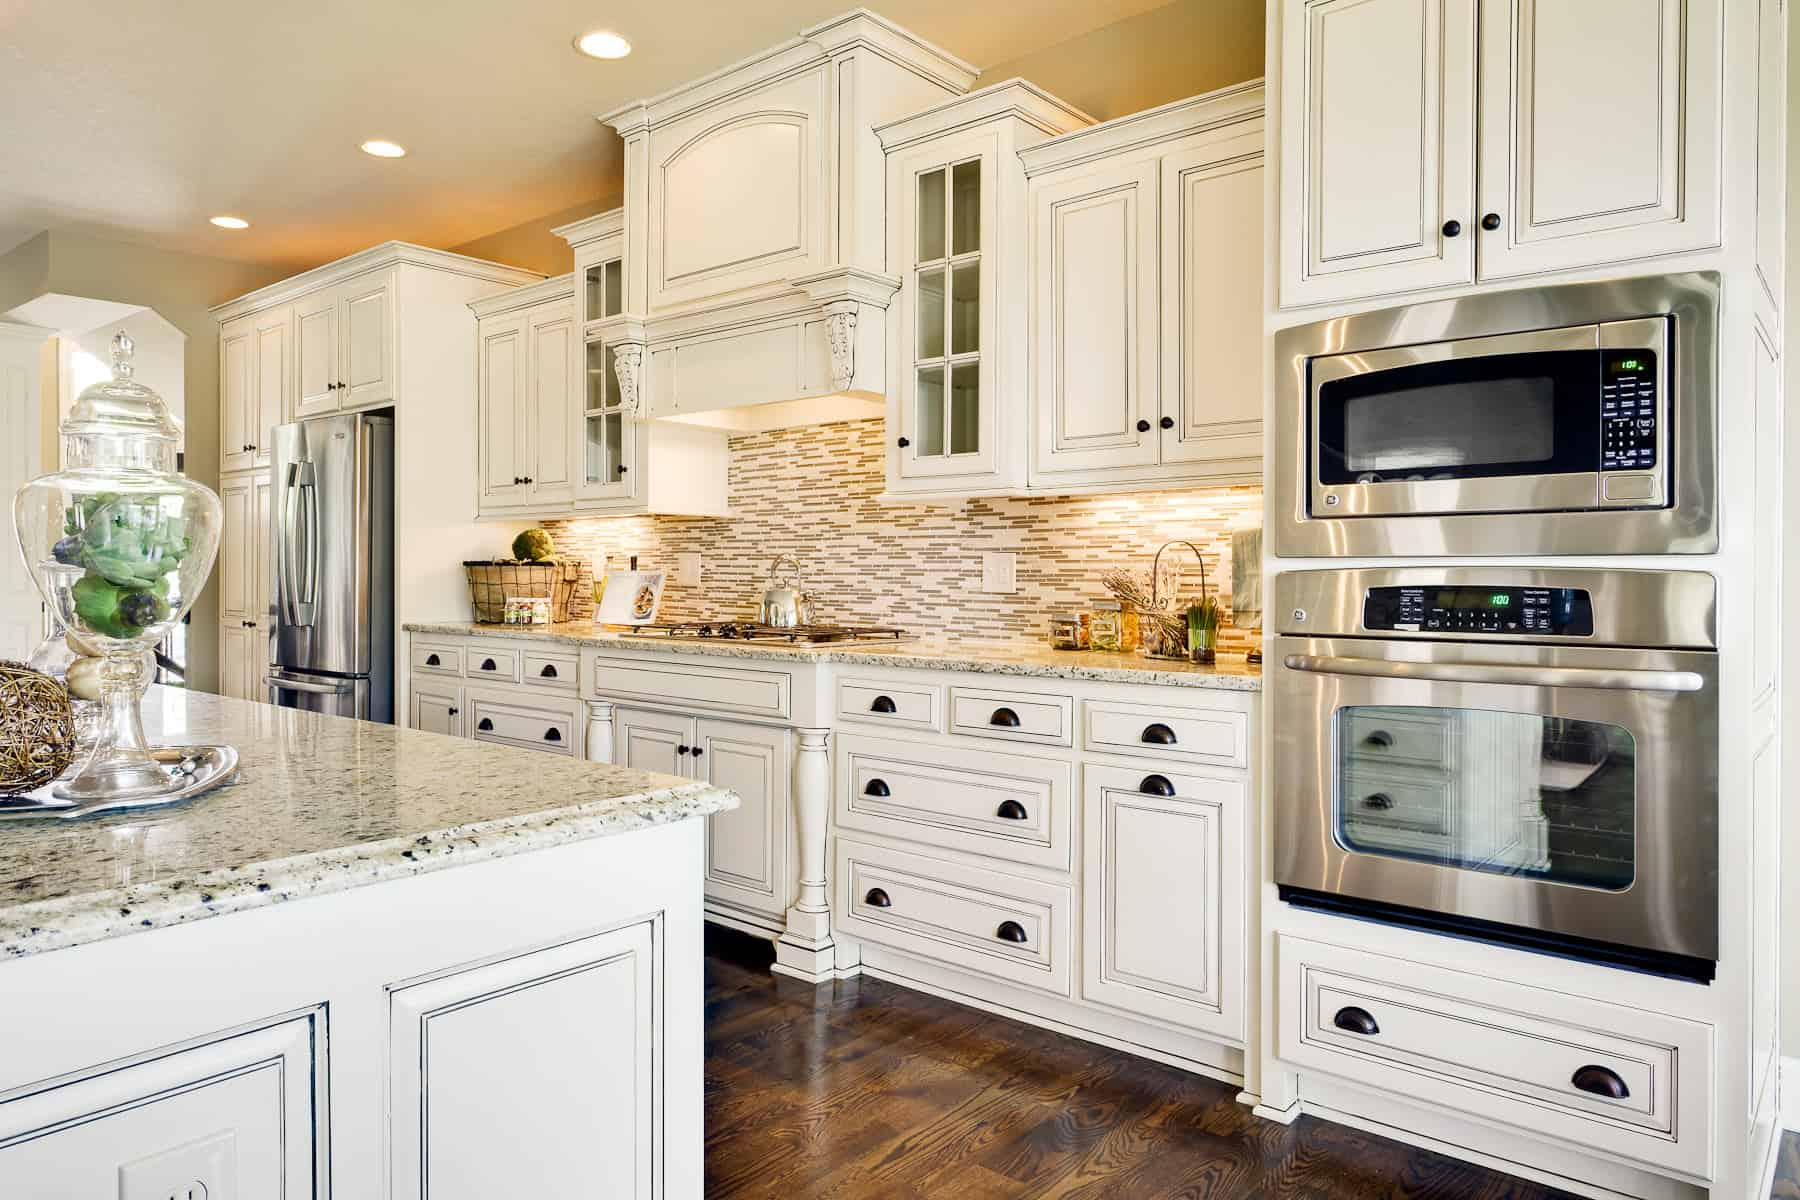 Charmant White Granite Countertops